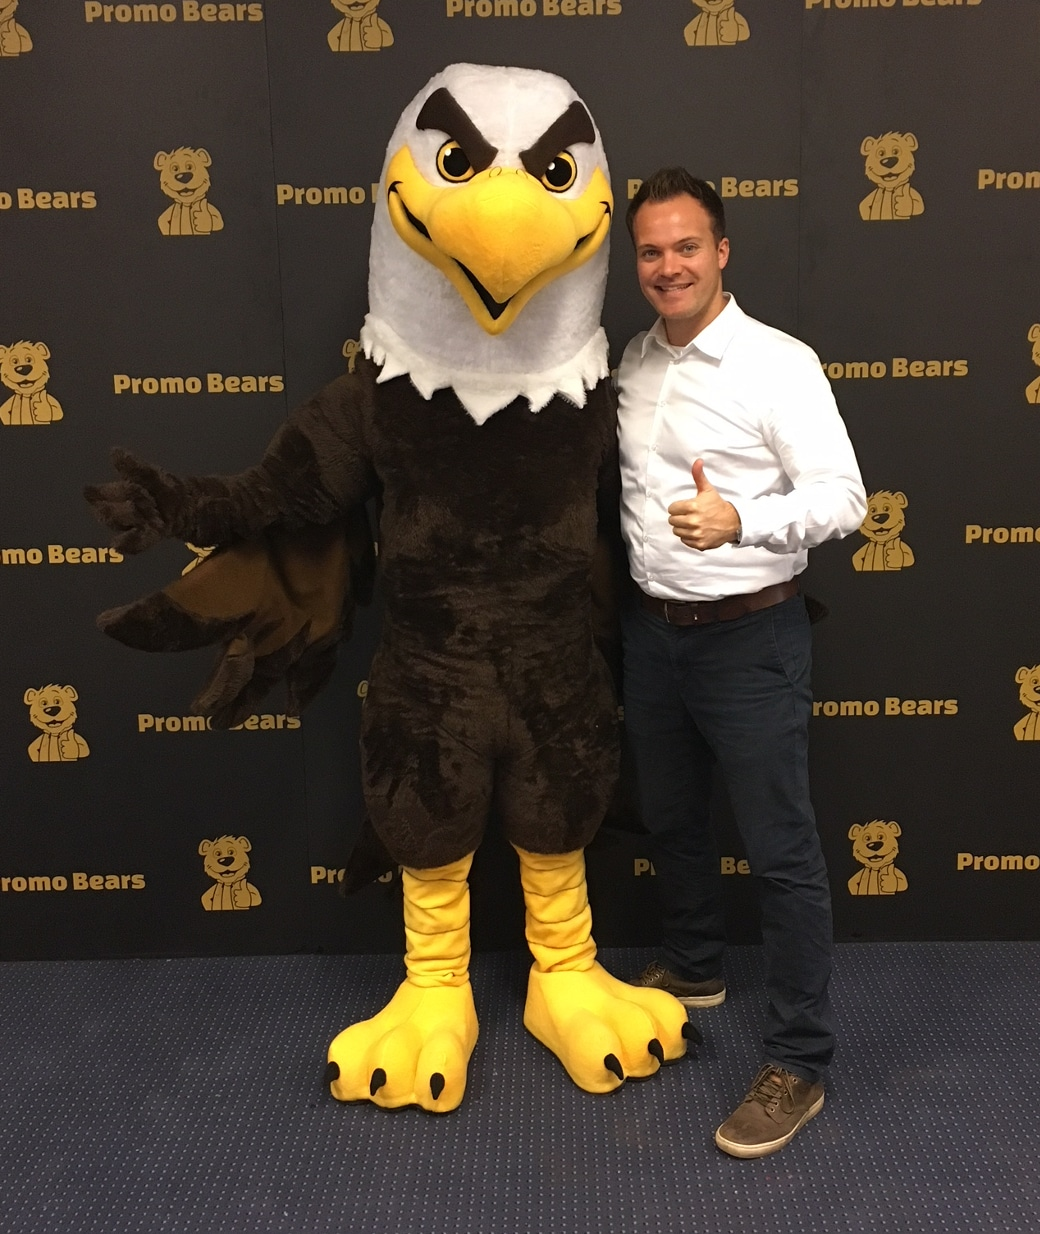 Eagle Mascot Costume with person for proportions